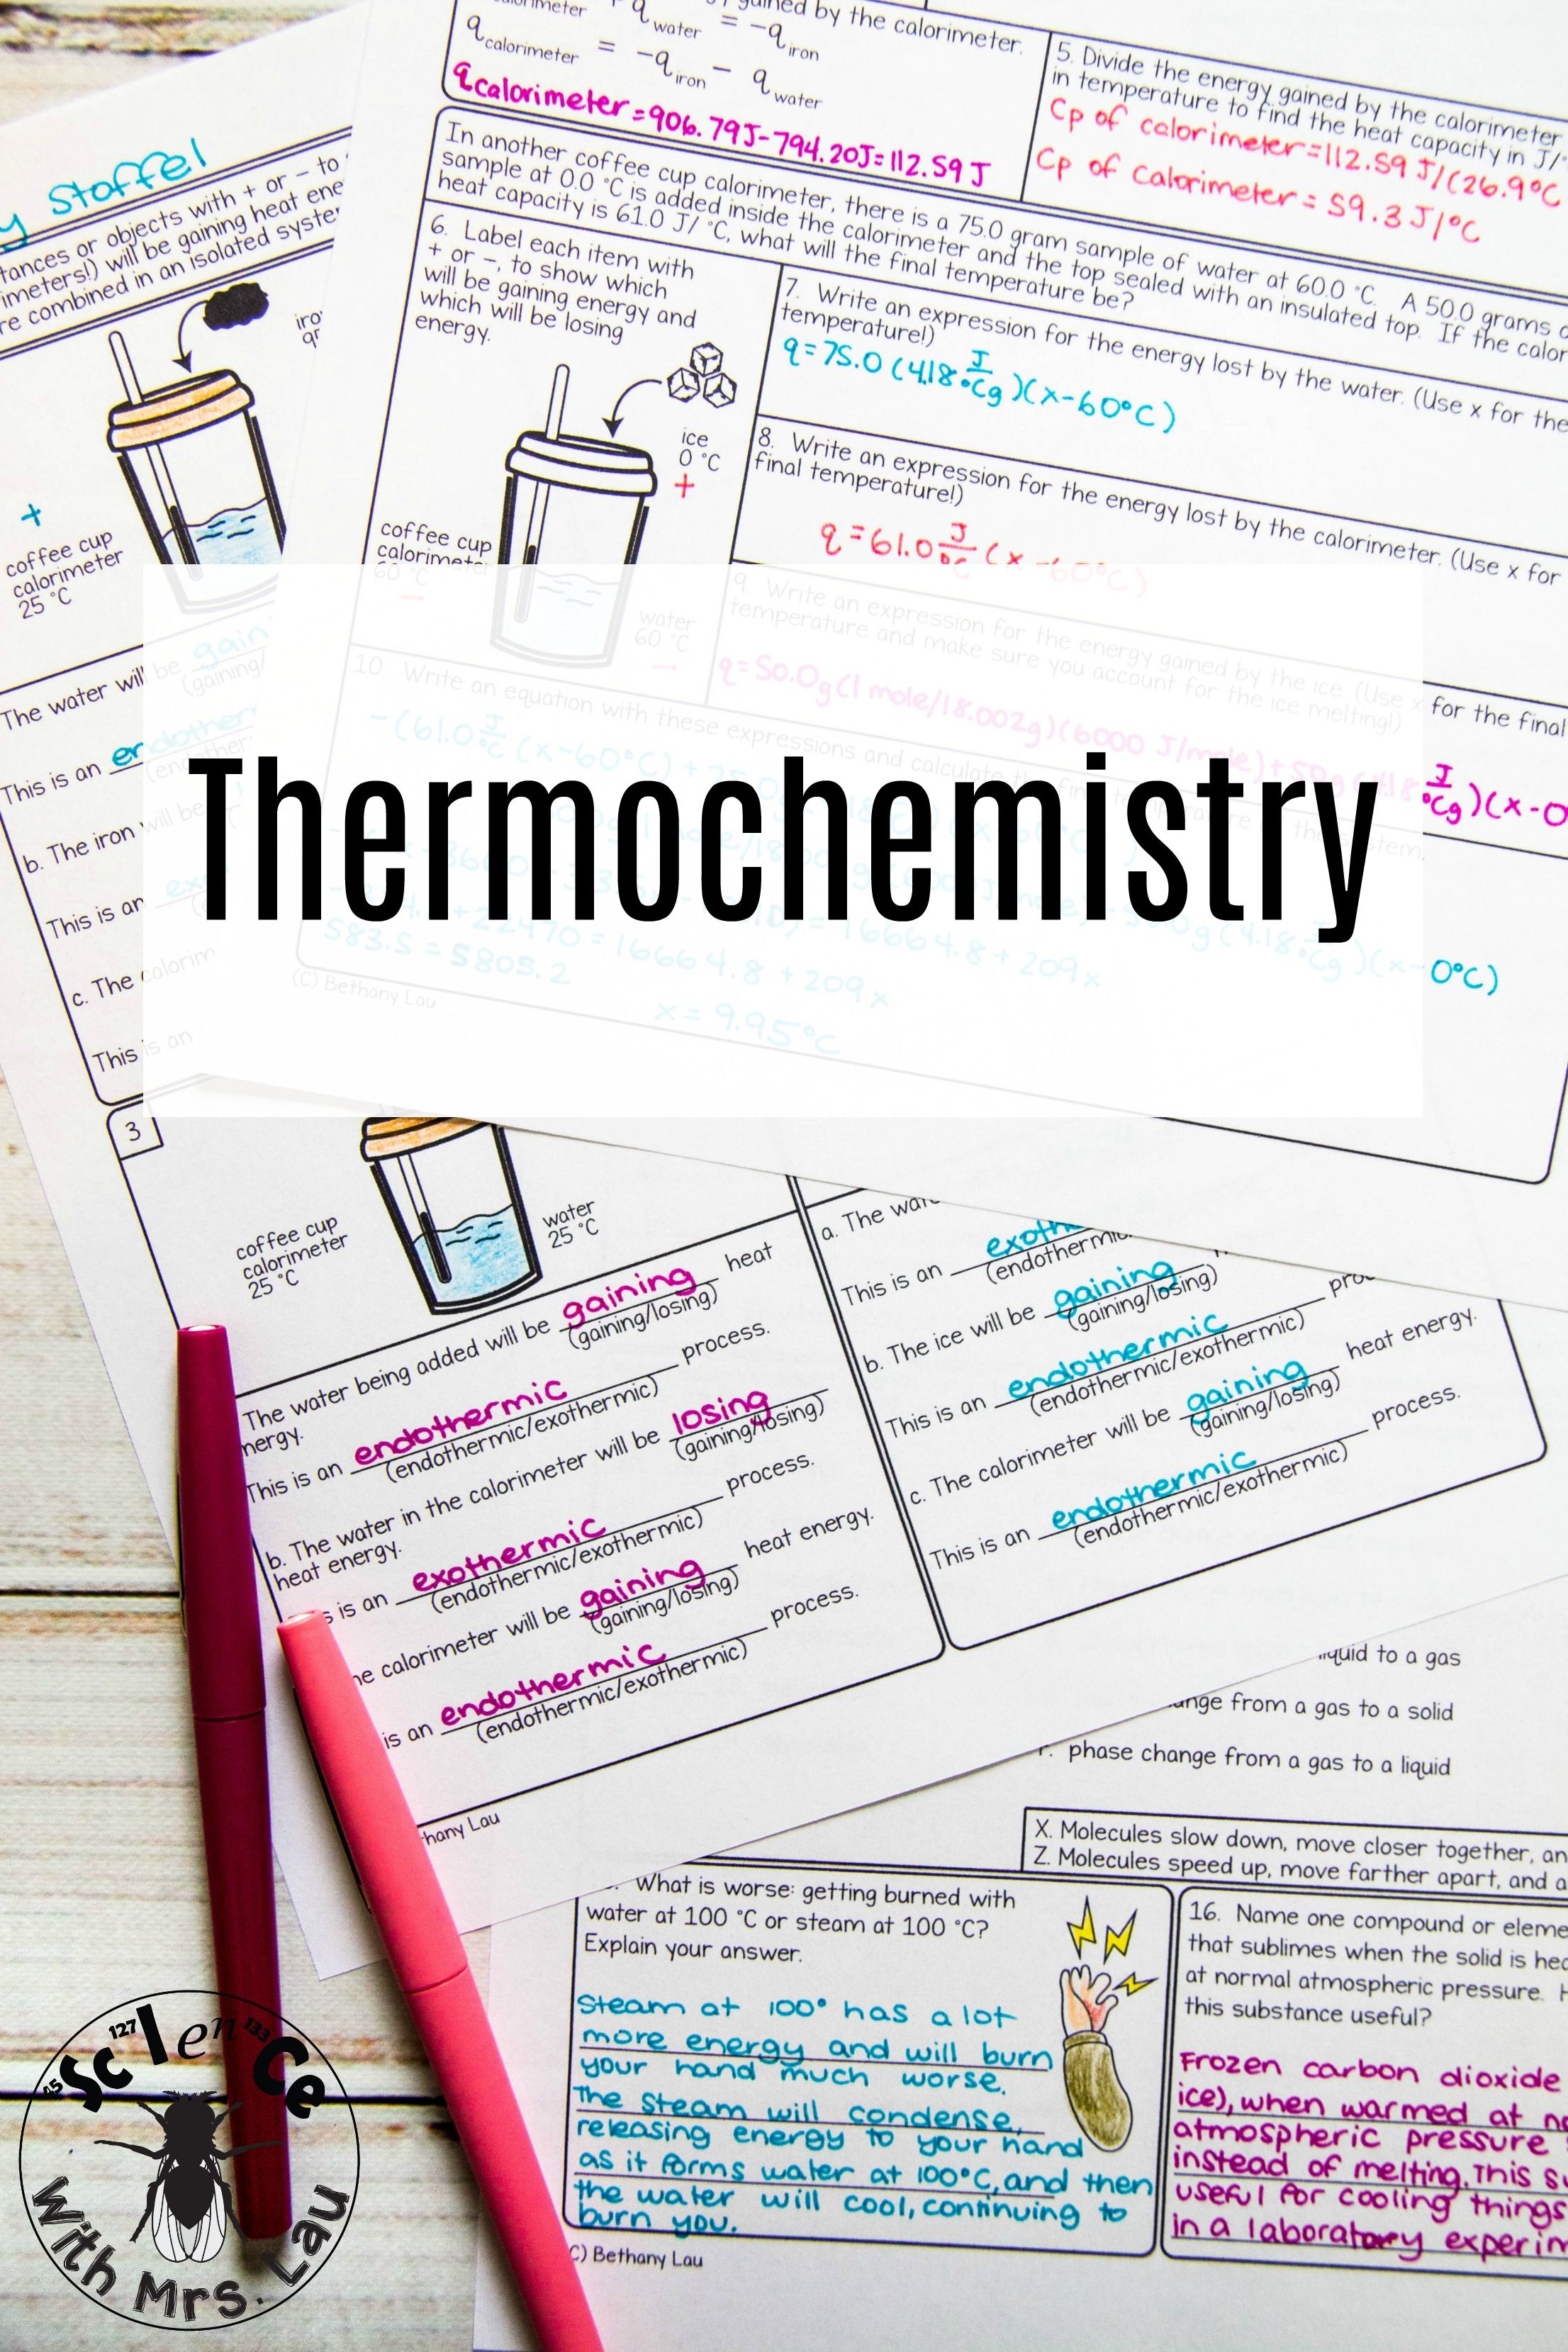 Thermochemistry and states of matter chemistry homework pages elementary science fandeluxe Images